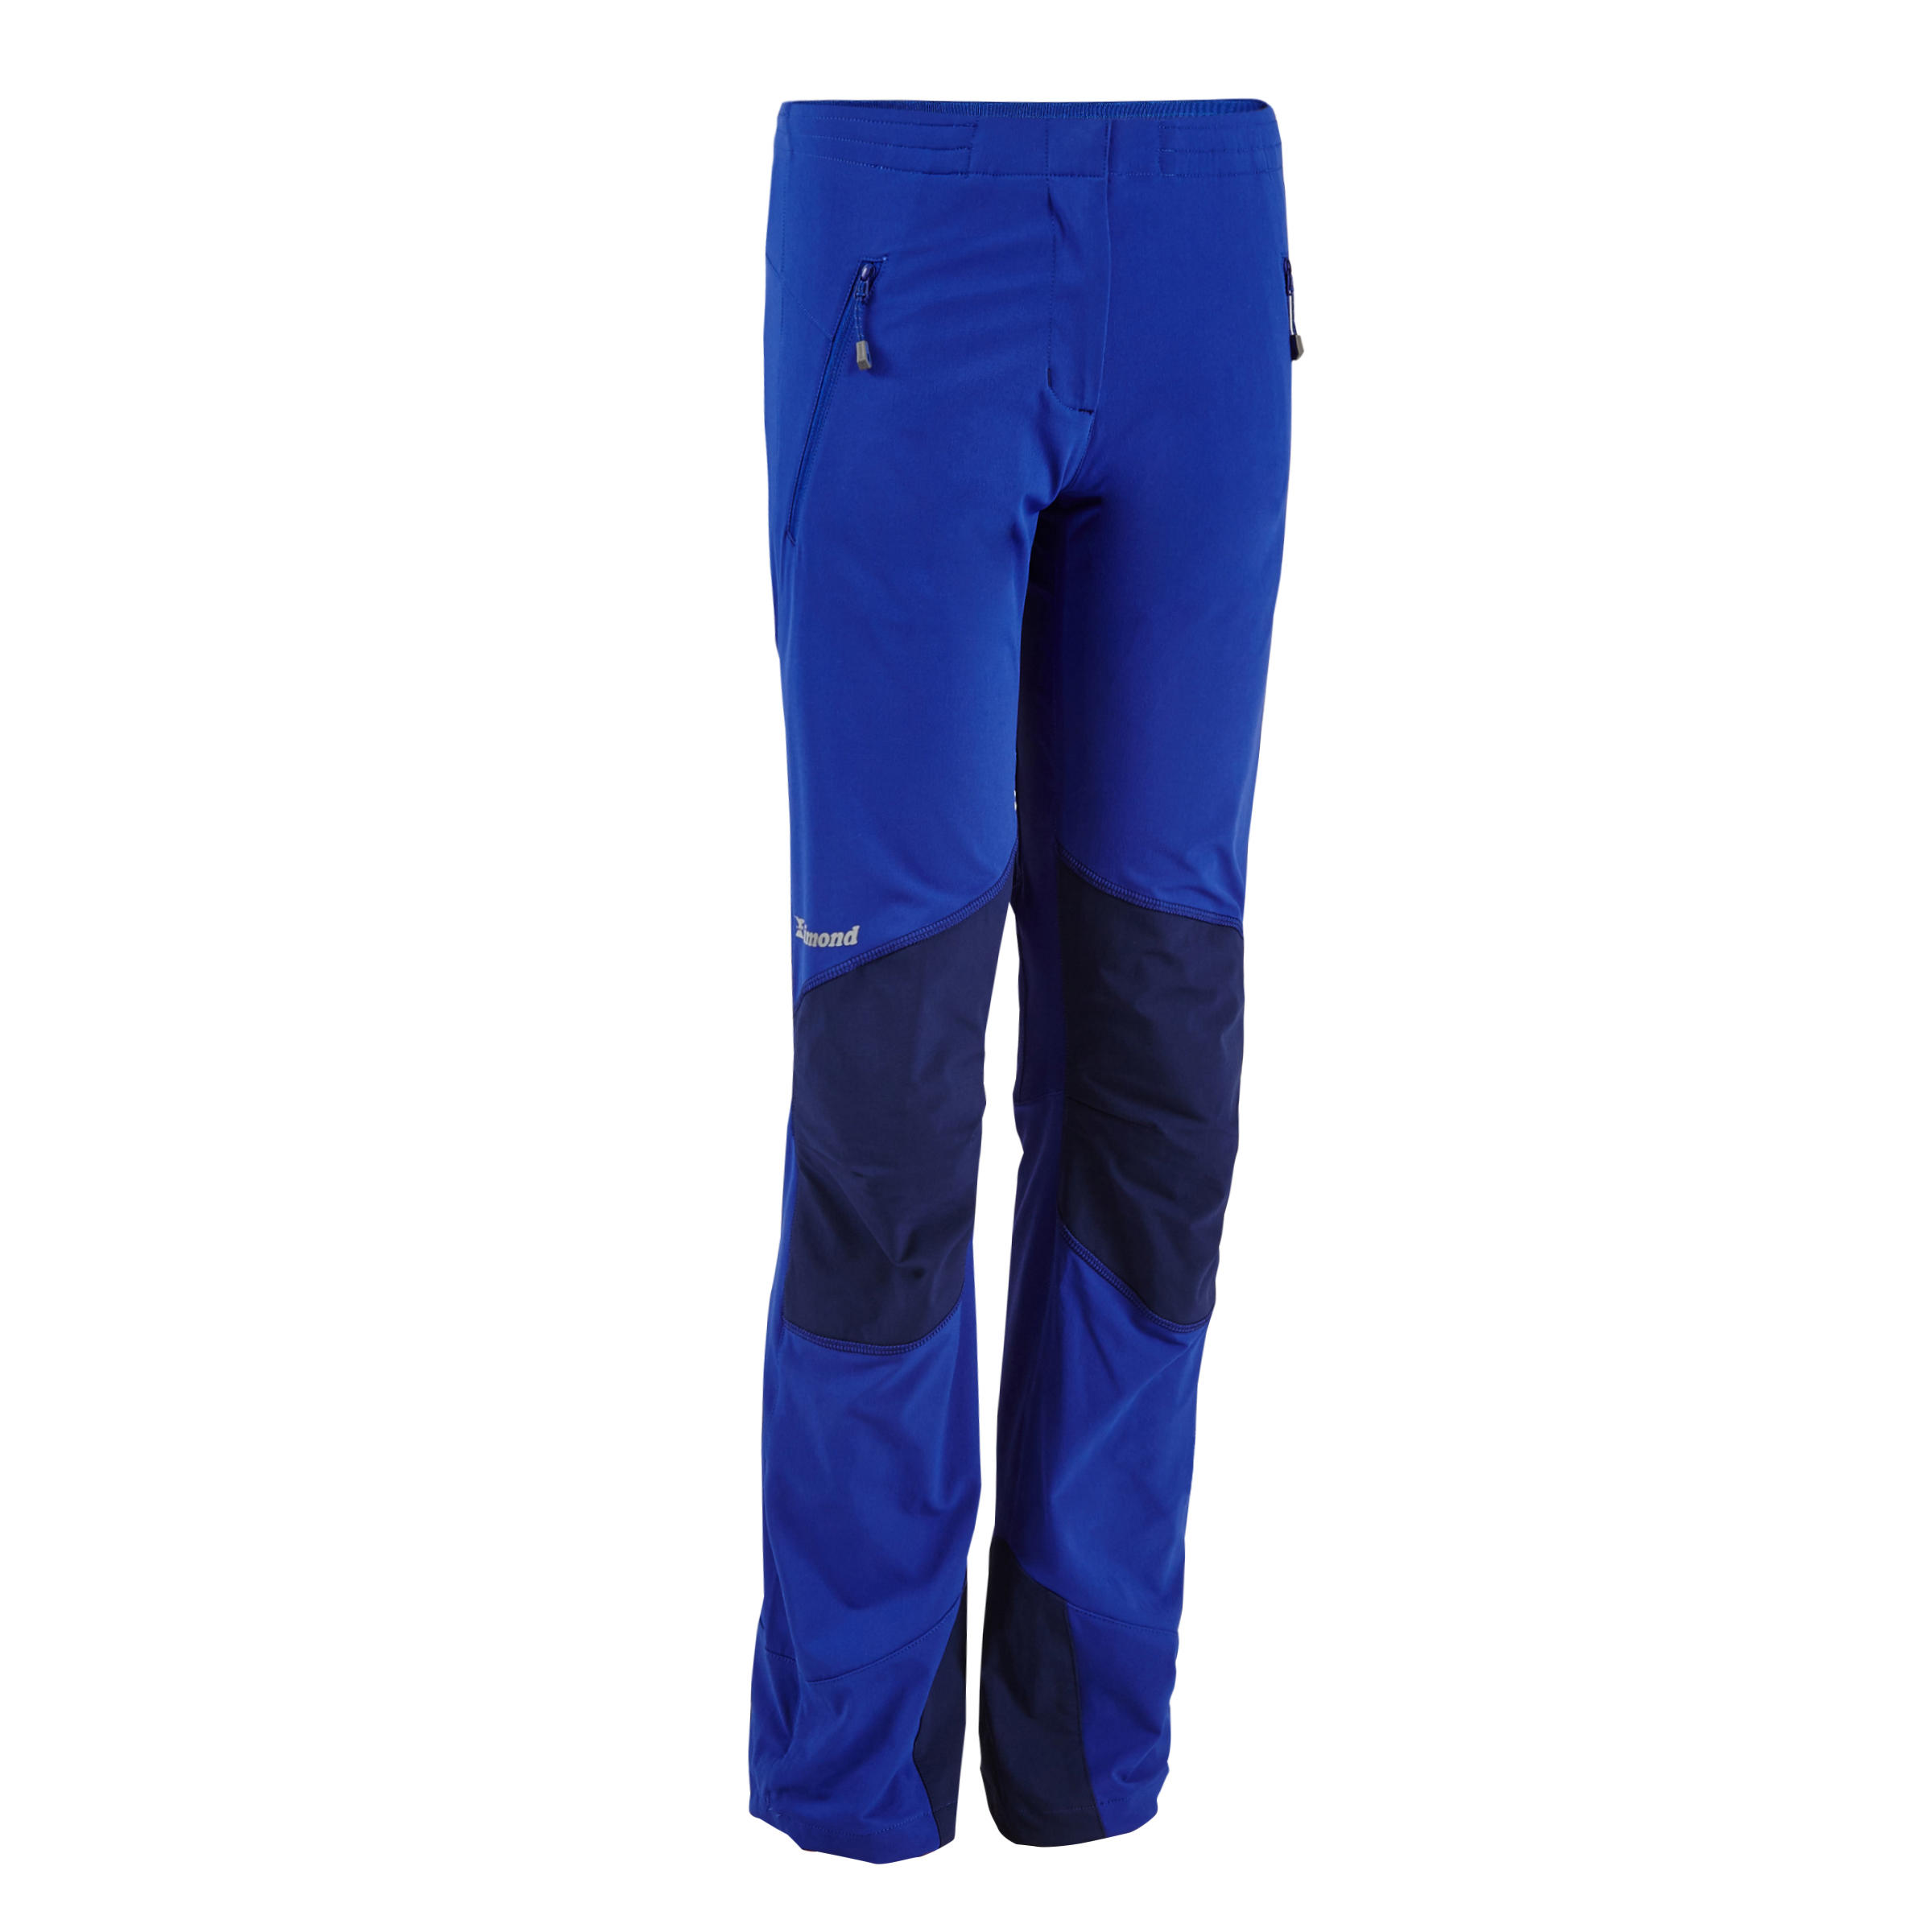 Rock Women's Pants - Indigo & Cosmos Blue